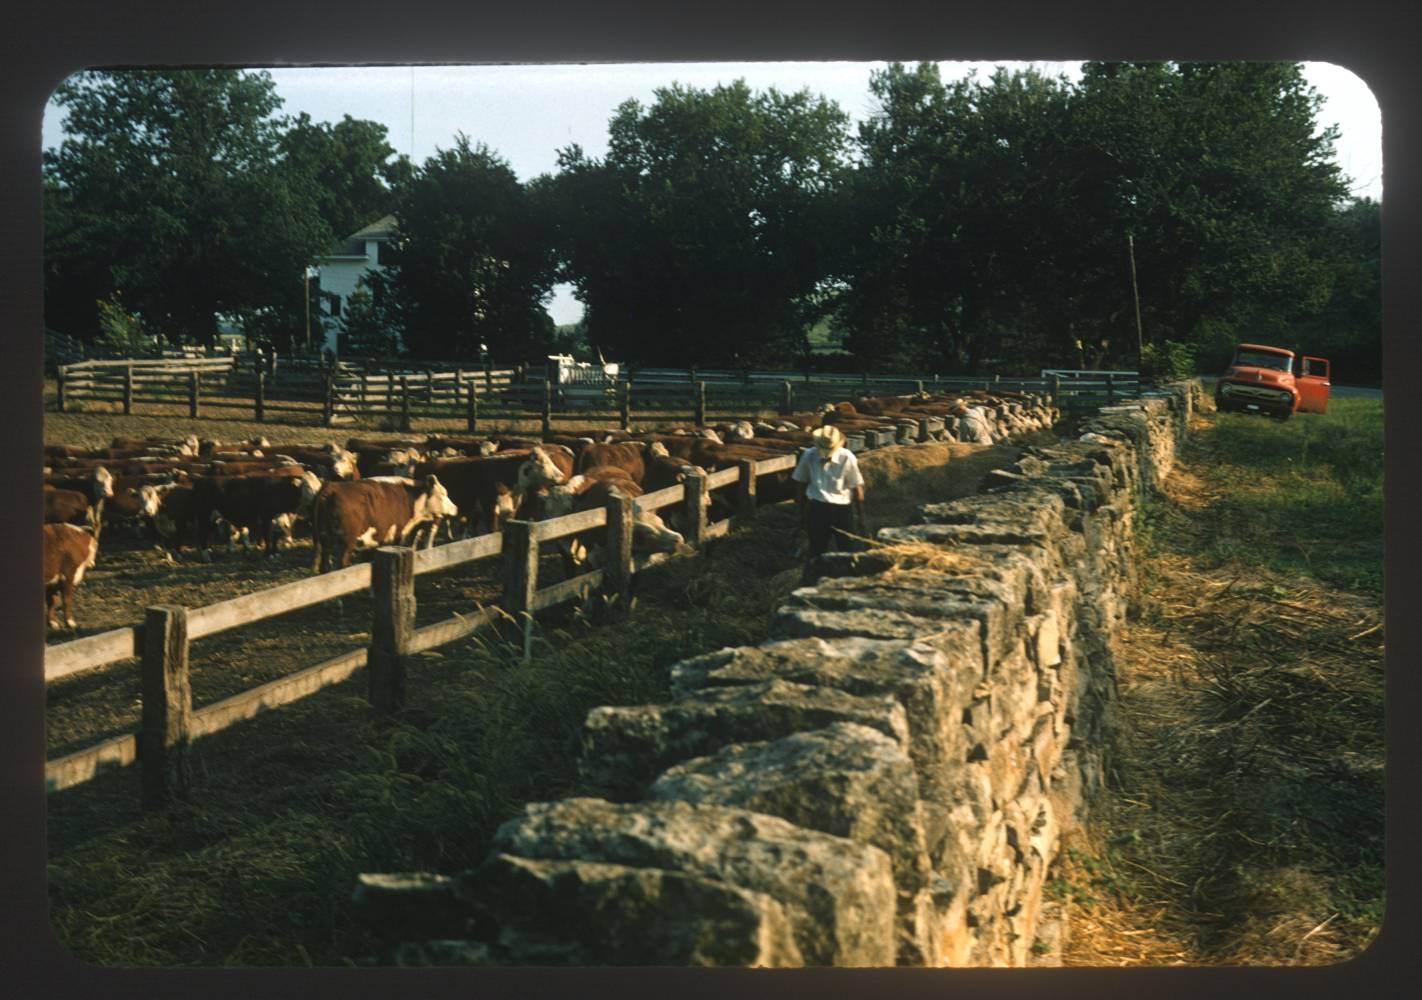 Stone fence and corral